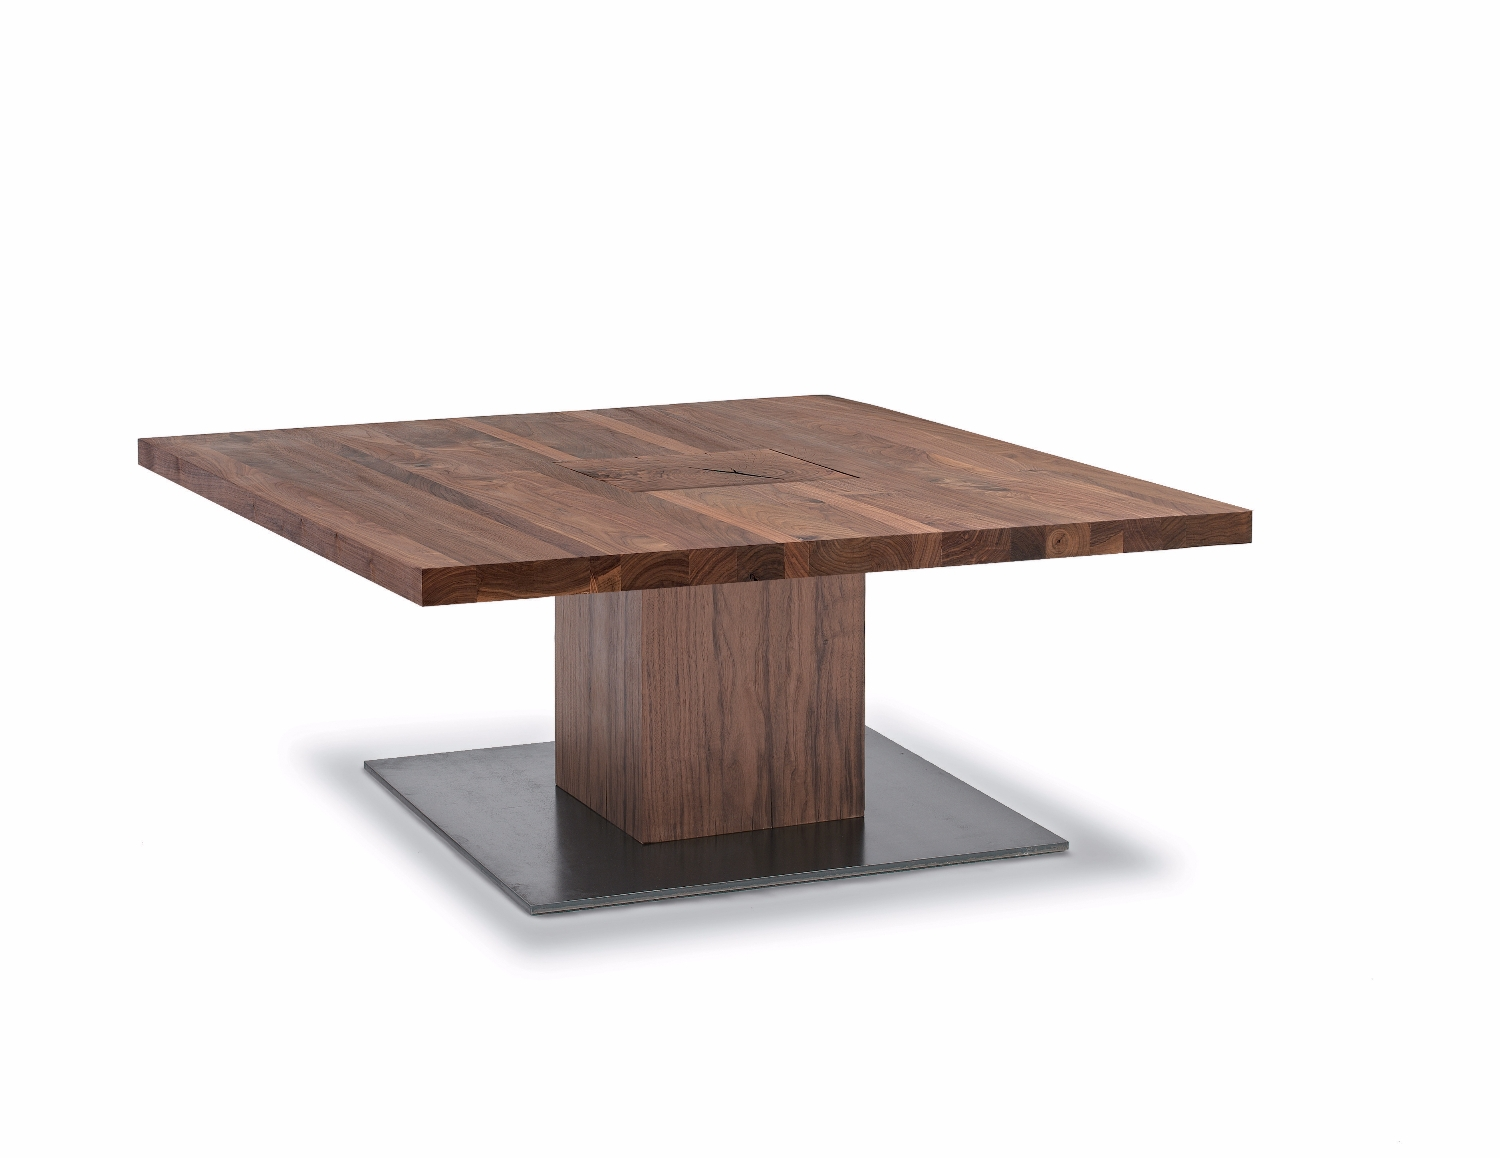 Couchtisch Boss Boss Small Riva 1920 - Coffee Table - Coffee Table